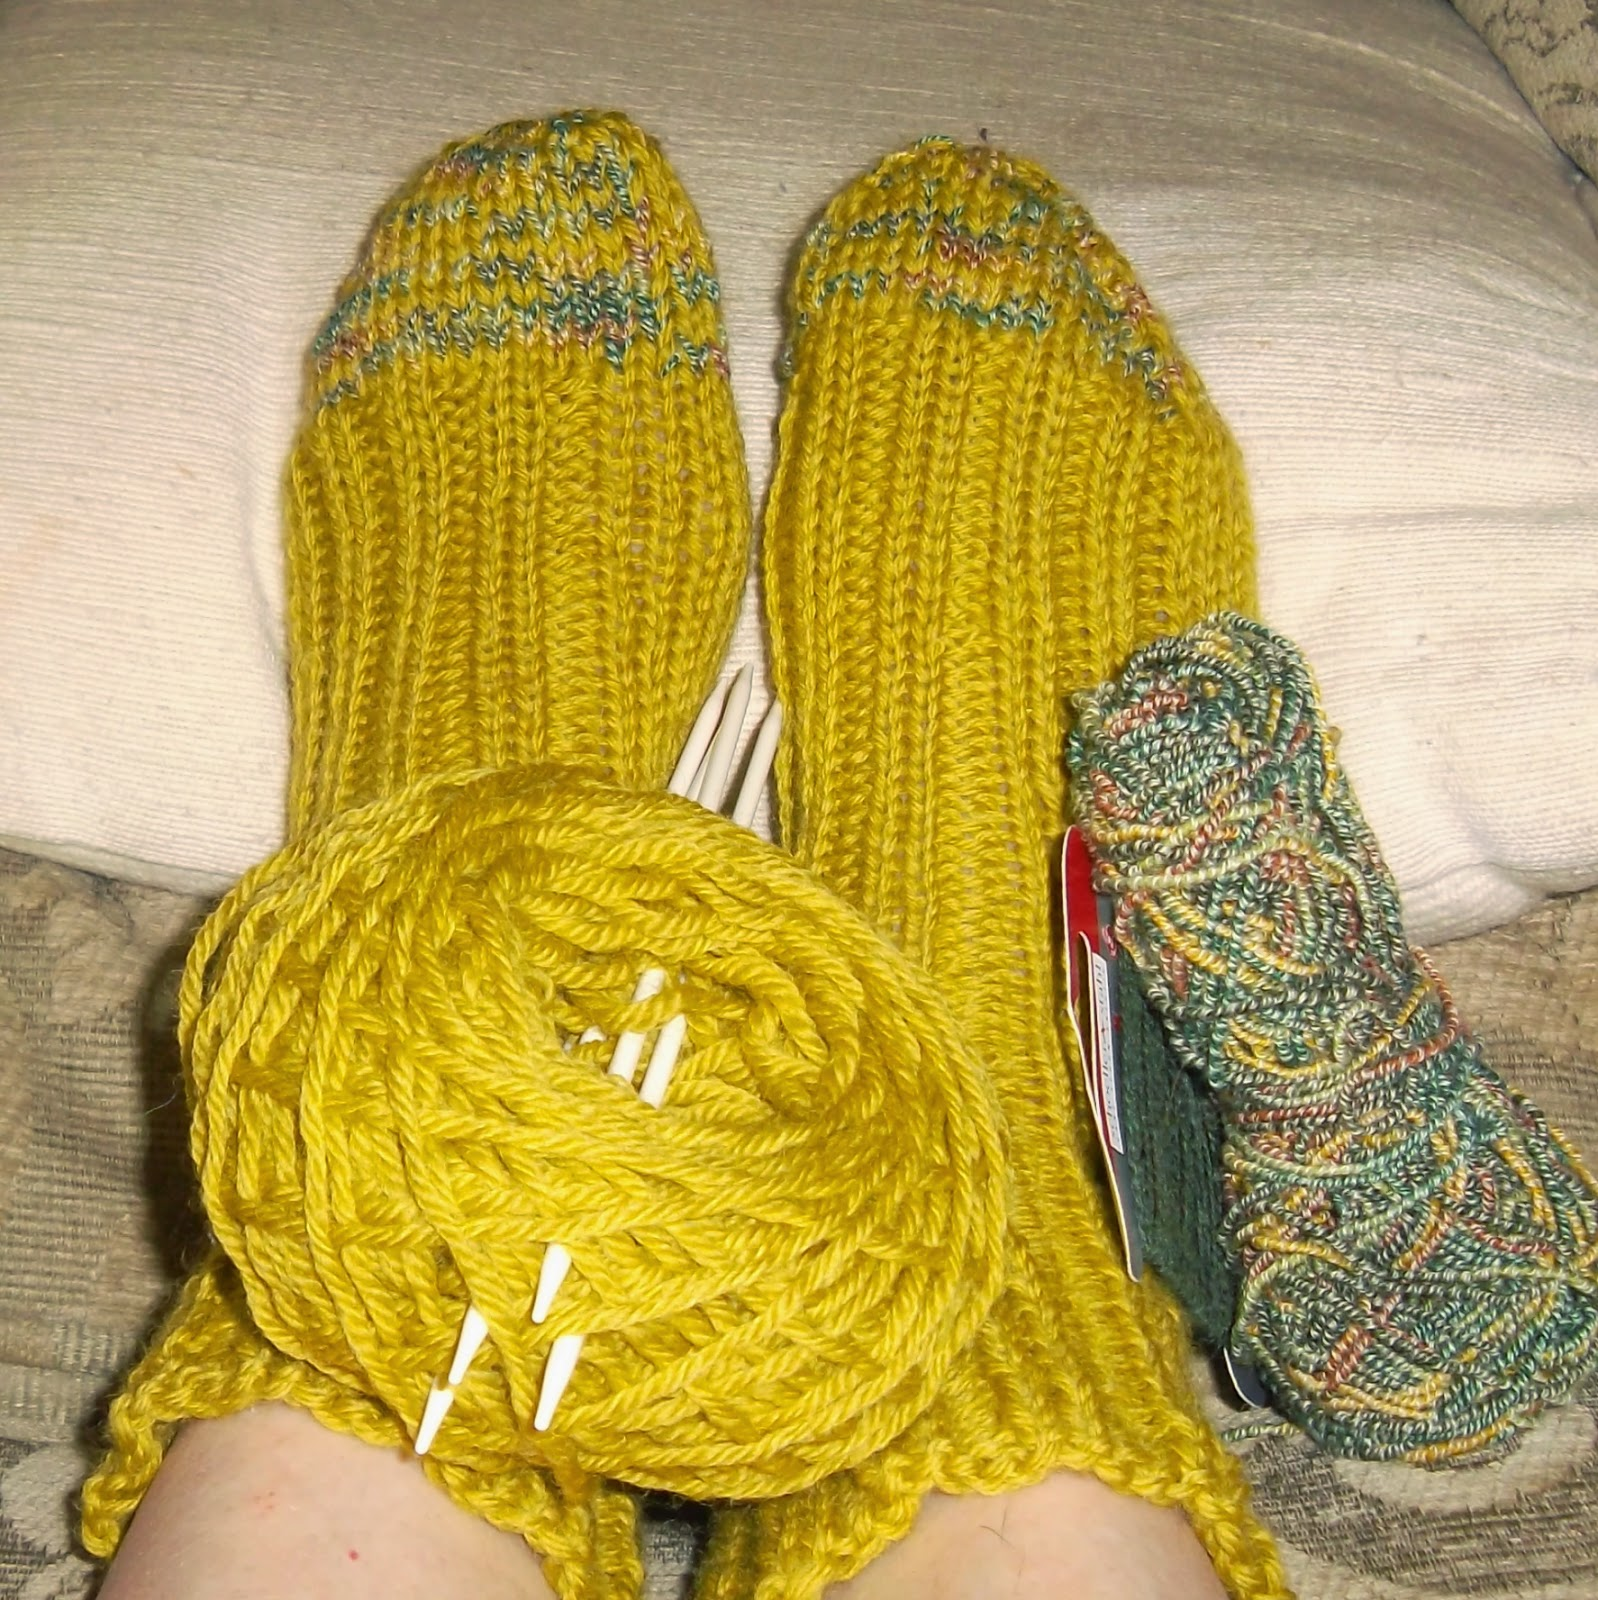 Feet enclosed in hand-knit, yellow-green socks. A yellow-green ball of yarn with four double-pointed knitting needles is positioned on top of the feet. Next to them are a skein of dark-green nylon thread wrapped on cardboard and a larger skein of varigated green, brown and gold yarn.